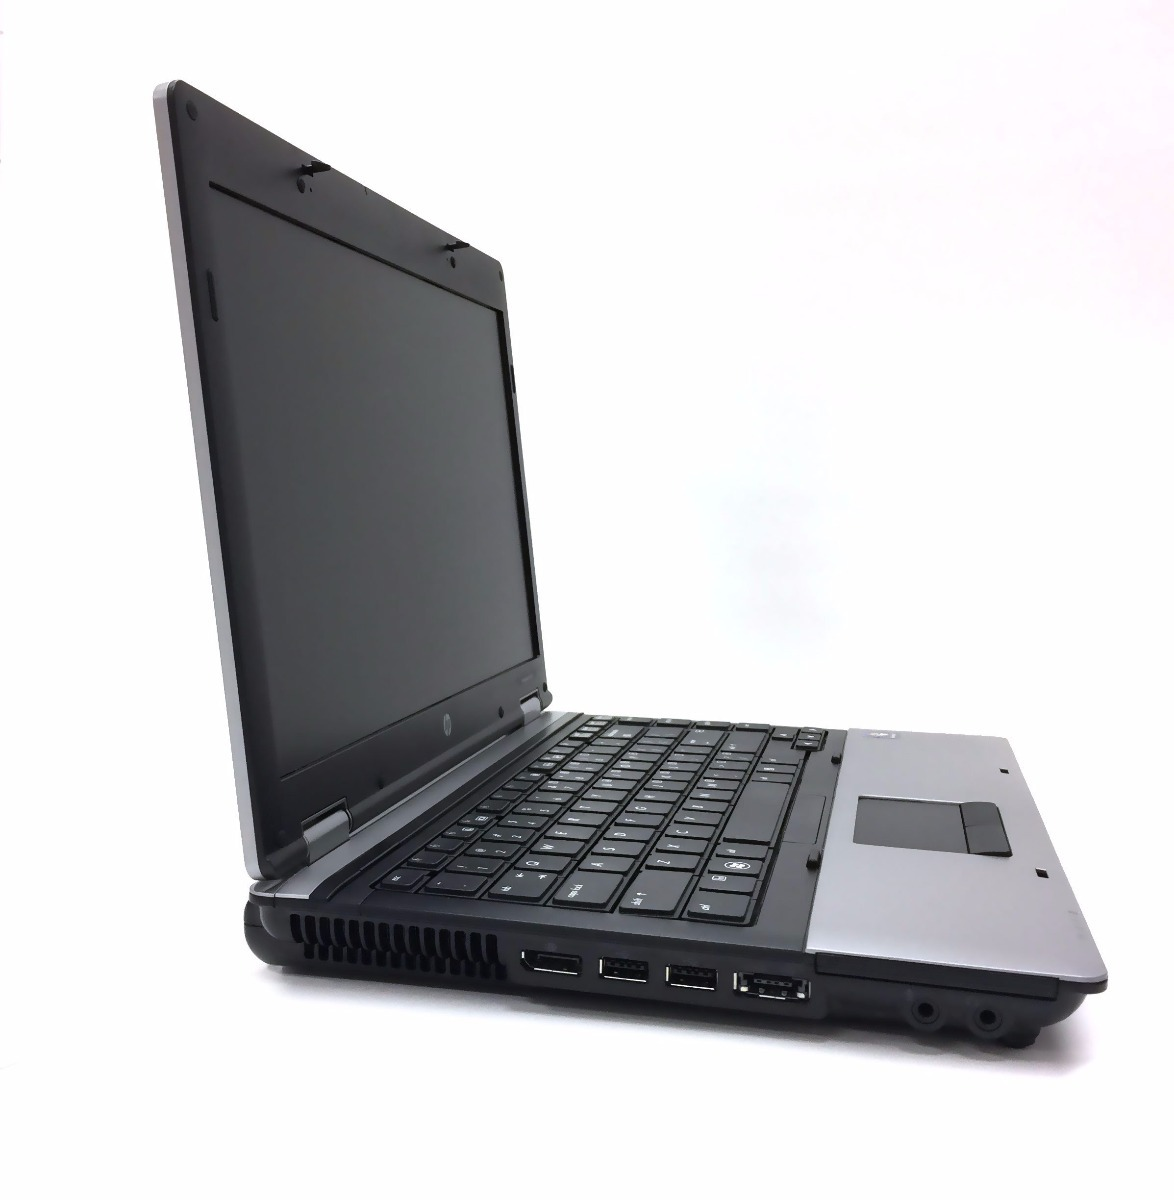 HP PROBOOK 6455B WINDOWS 10 DRIVERS DOWNLOAD